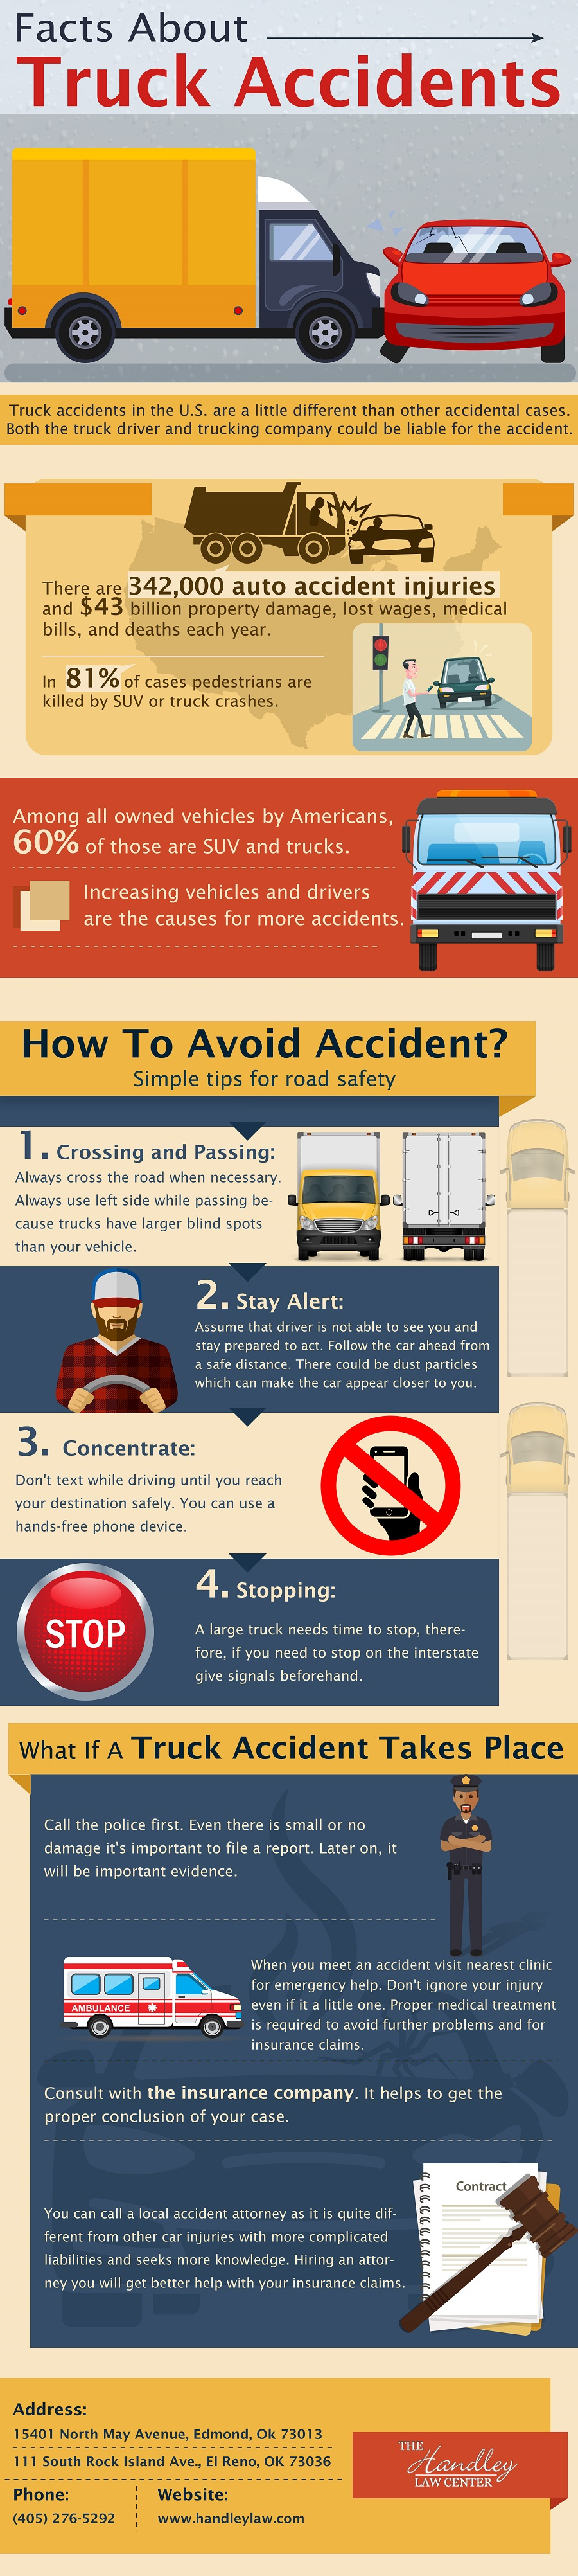 Facts About Truck Accidents Infographic